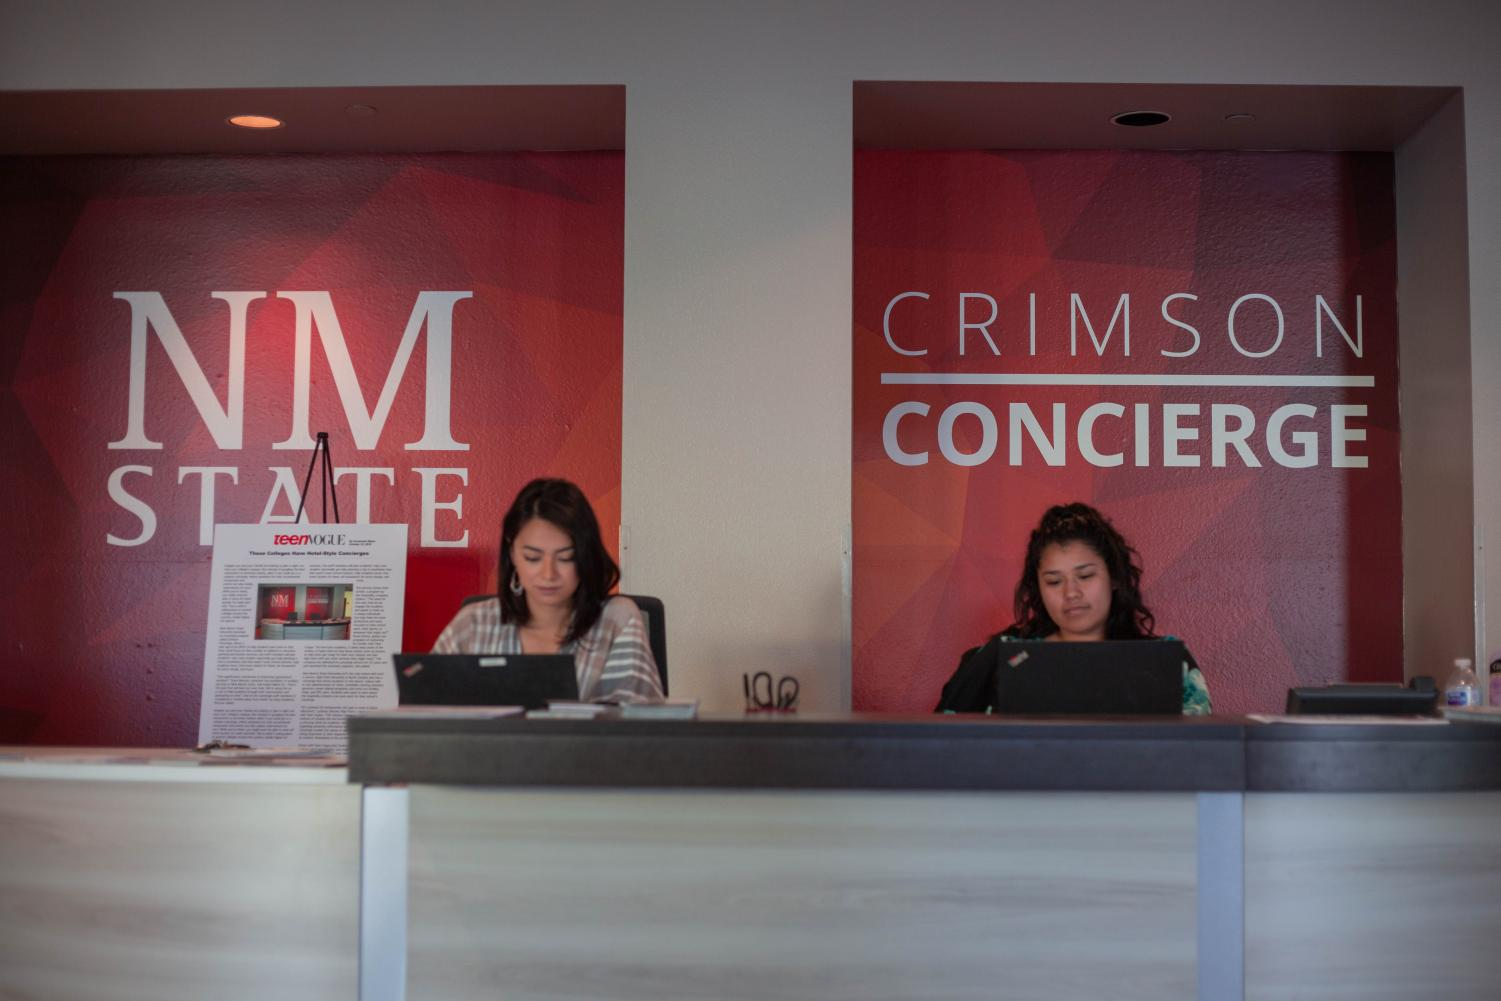 Crimson Concierge aims to help students by providing convenient services.